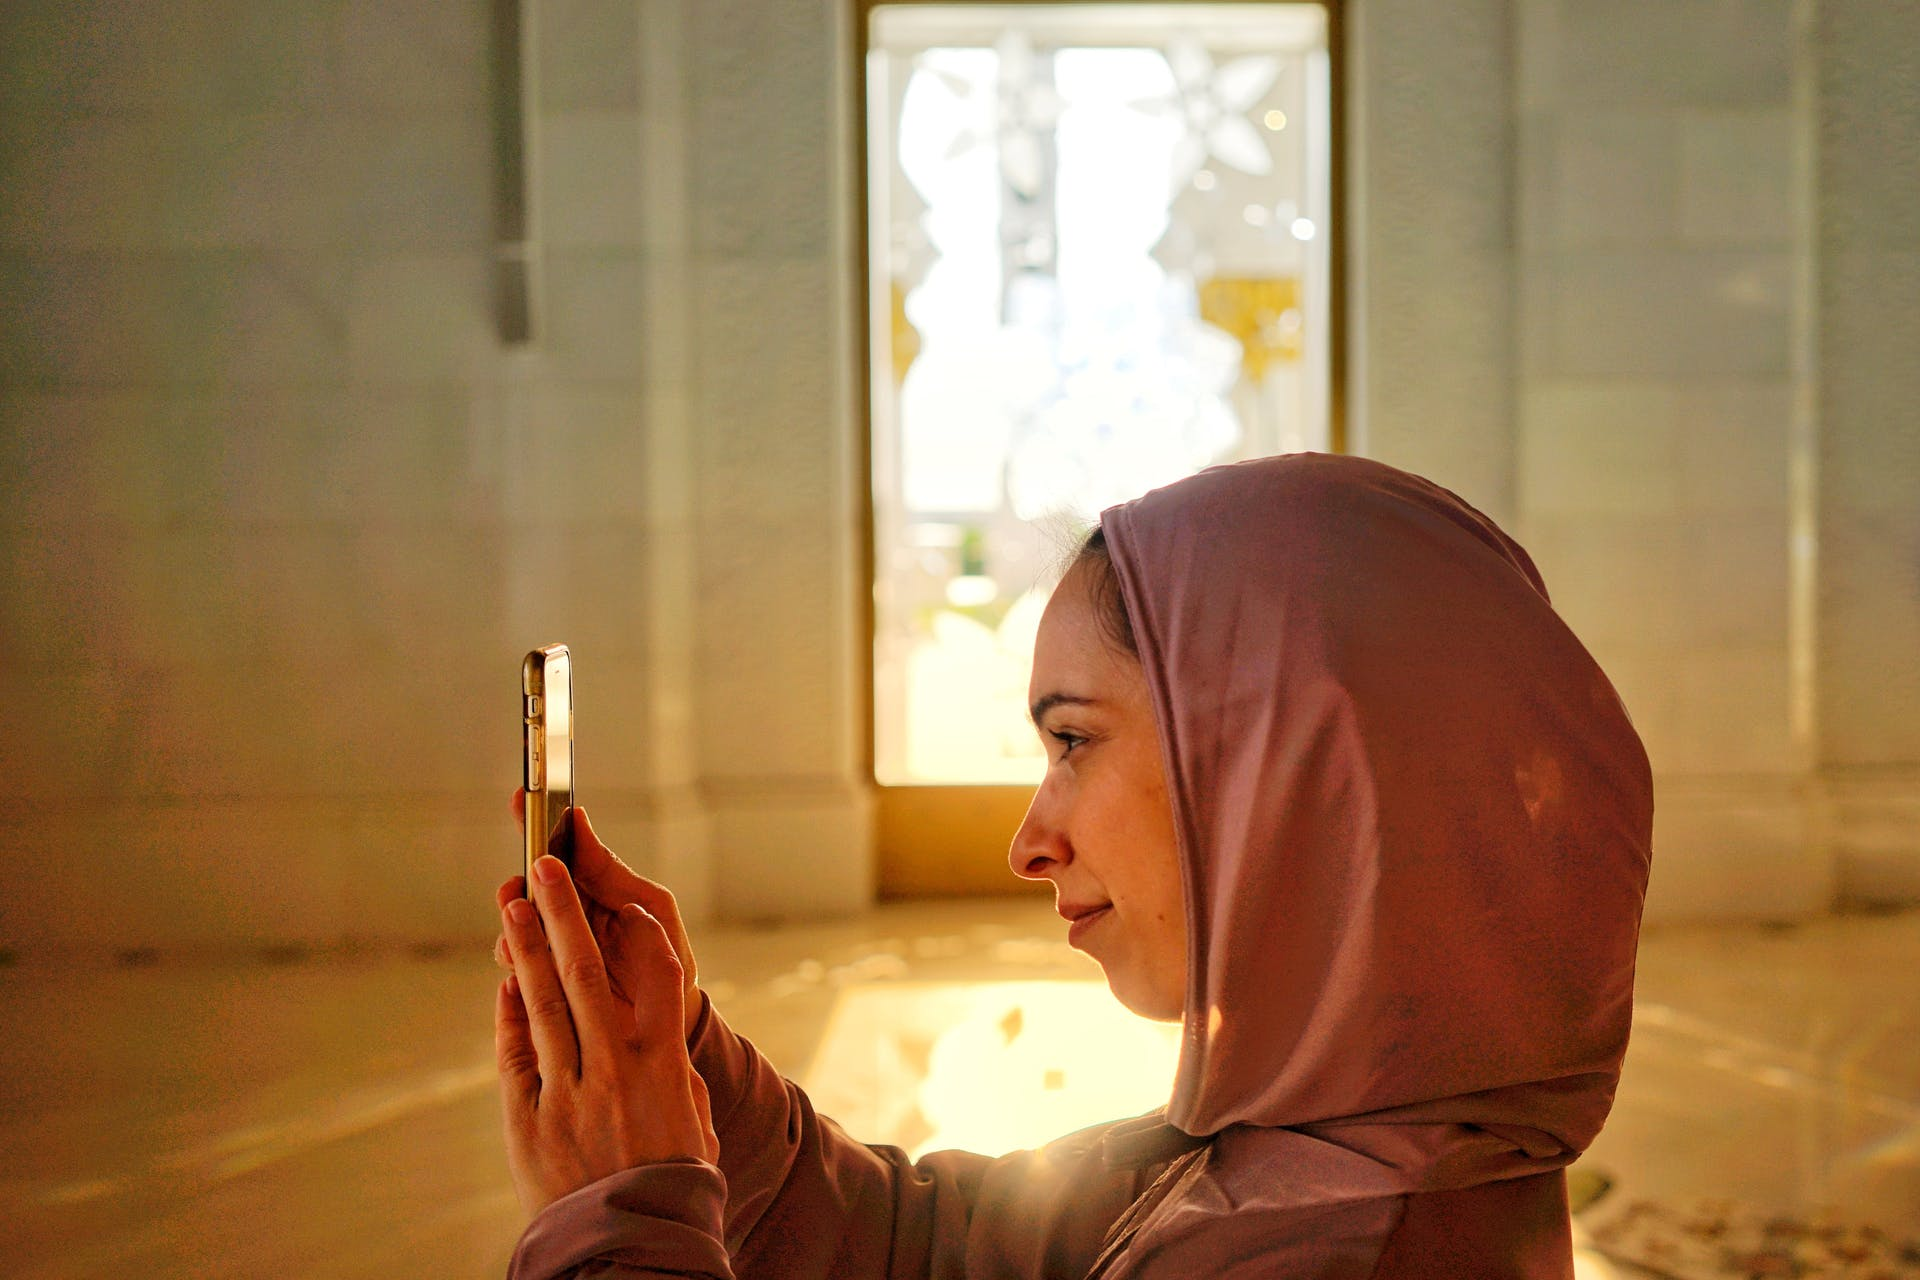 arabian woman holding her smartphone to take a photo